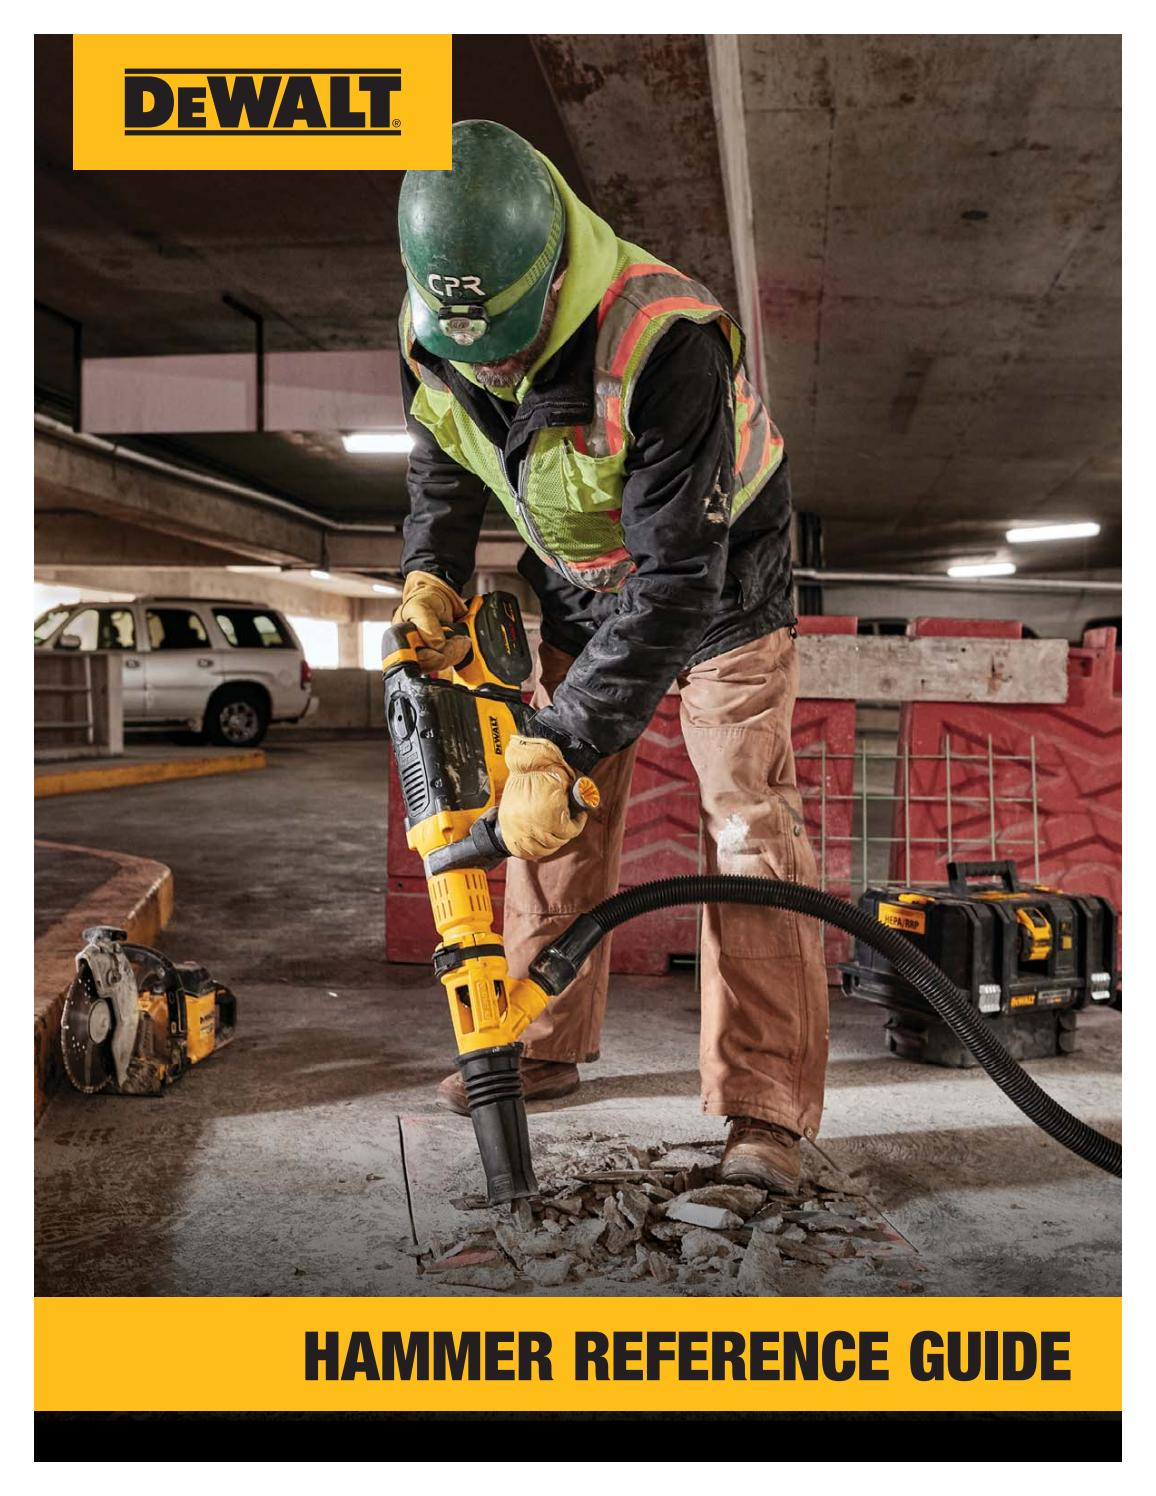 DEWALT Hammer Reference Guide by Ram Tool Construction